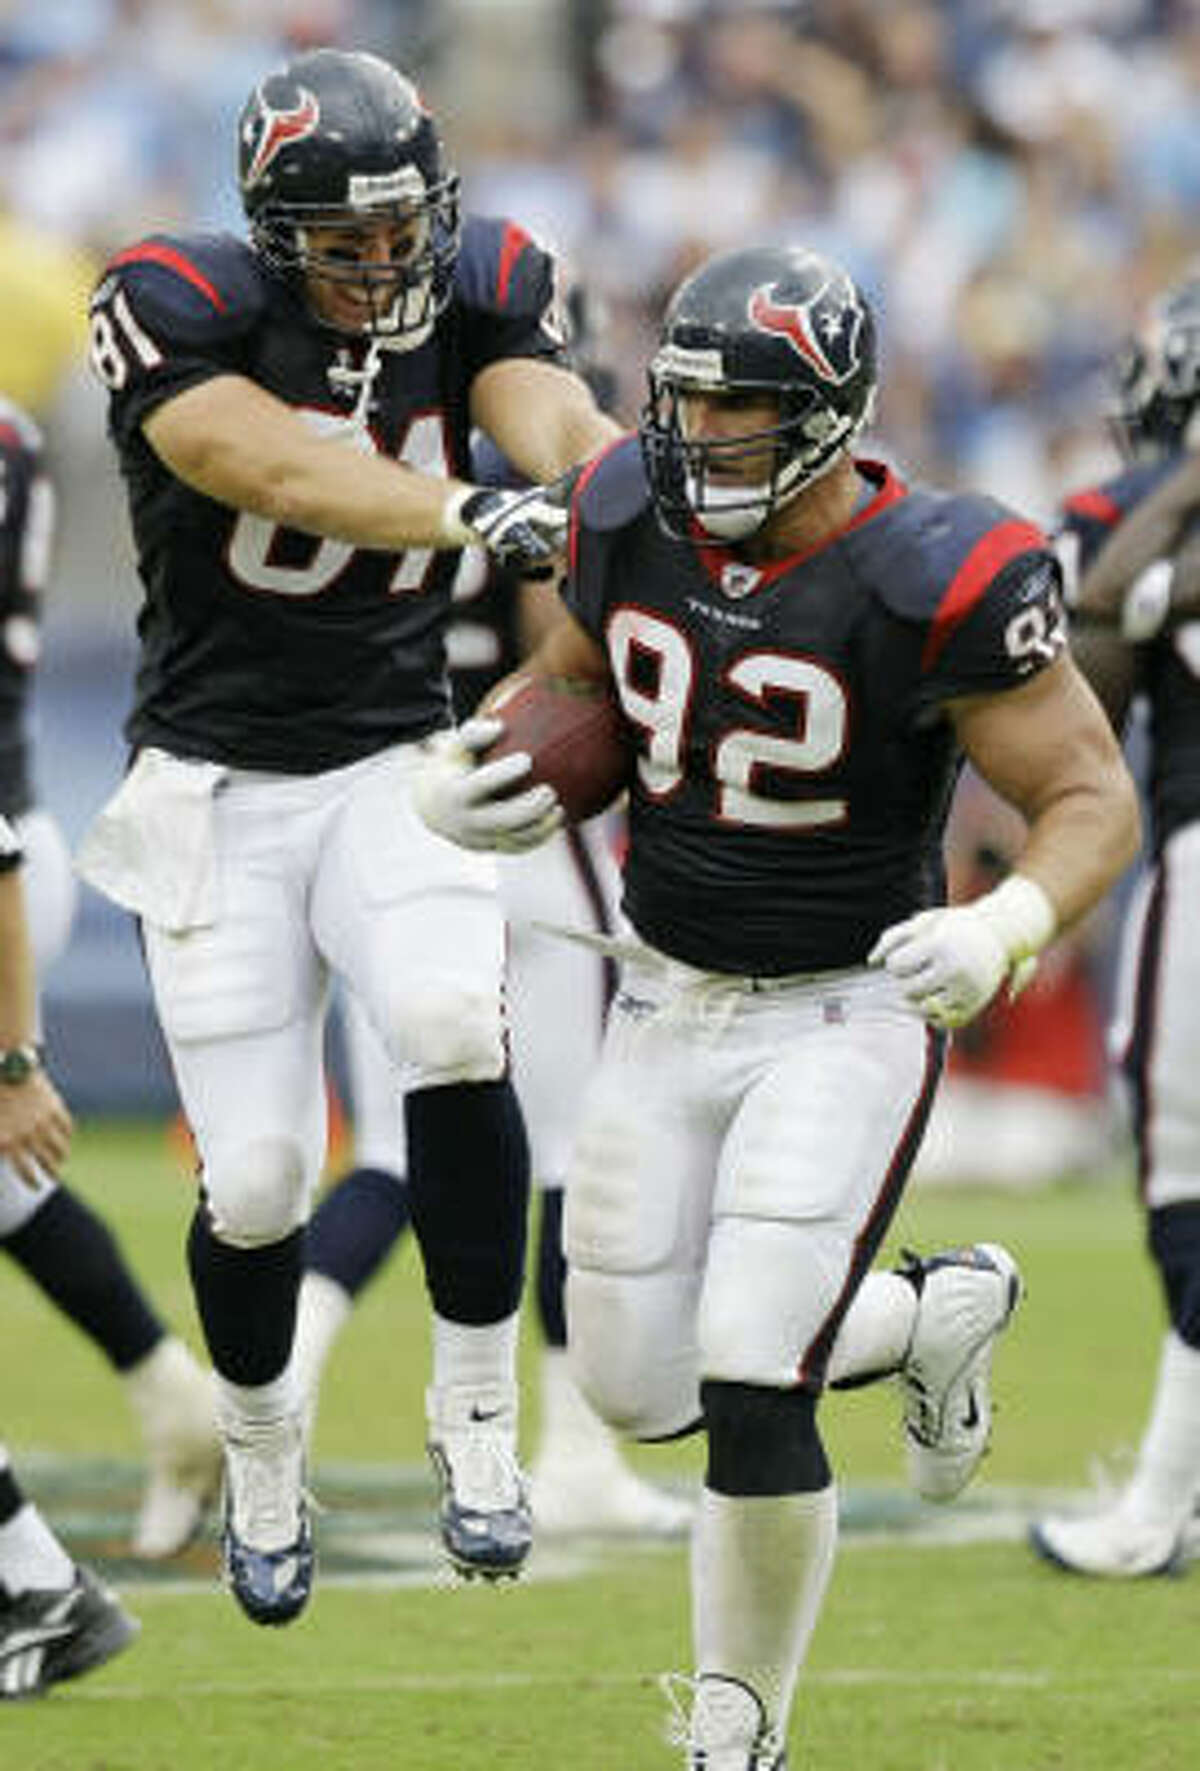 Texans defensive tackle Jeff Zgonina (92), at 39 the oldest player on the team, is congratulated by teammate Owen Daniels after Zgonina recovered a fumble by Kerry Collins late in the game.